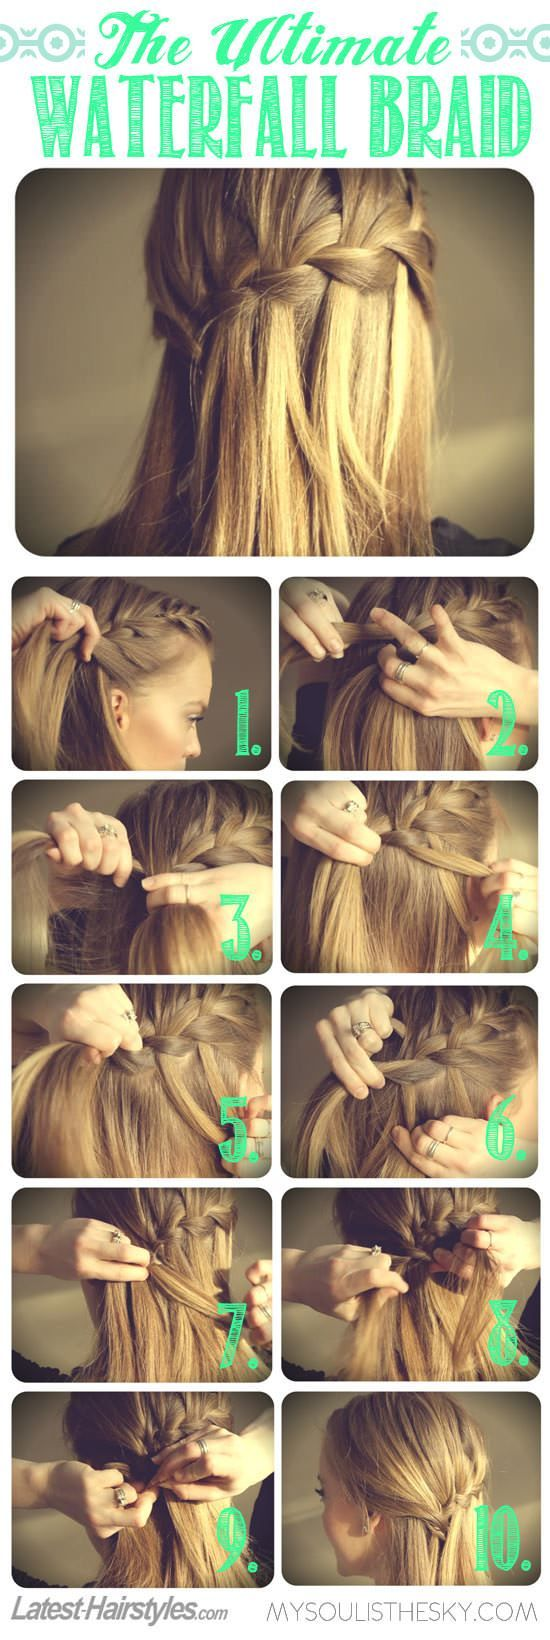 Phenomenal 20 Gorgeous Braided Hairstyles You Can Actually Do Yourself Hairstyle Inspiration Daily Dogsangcom